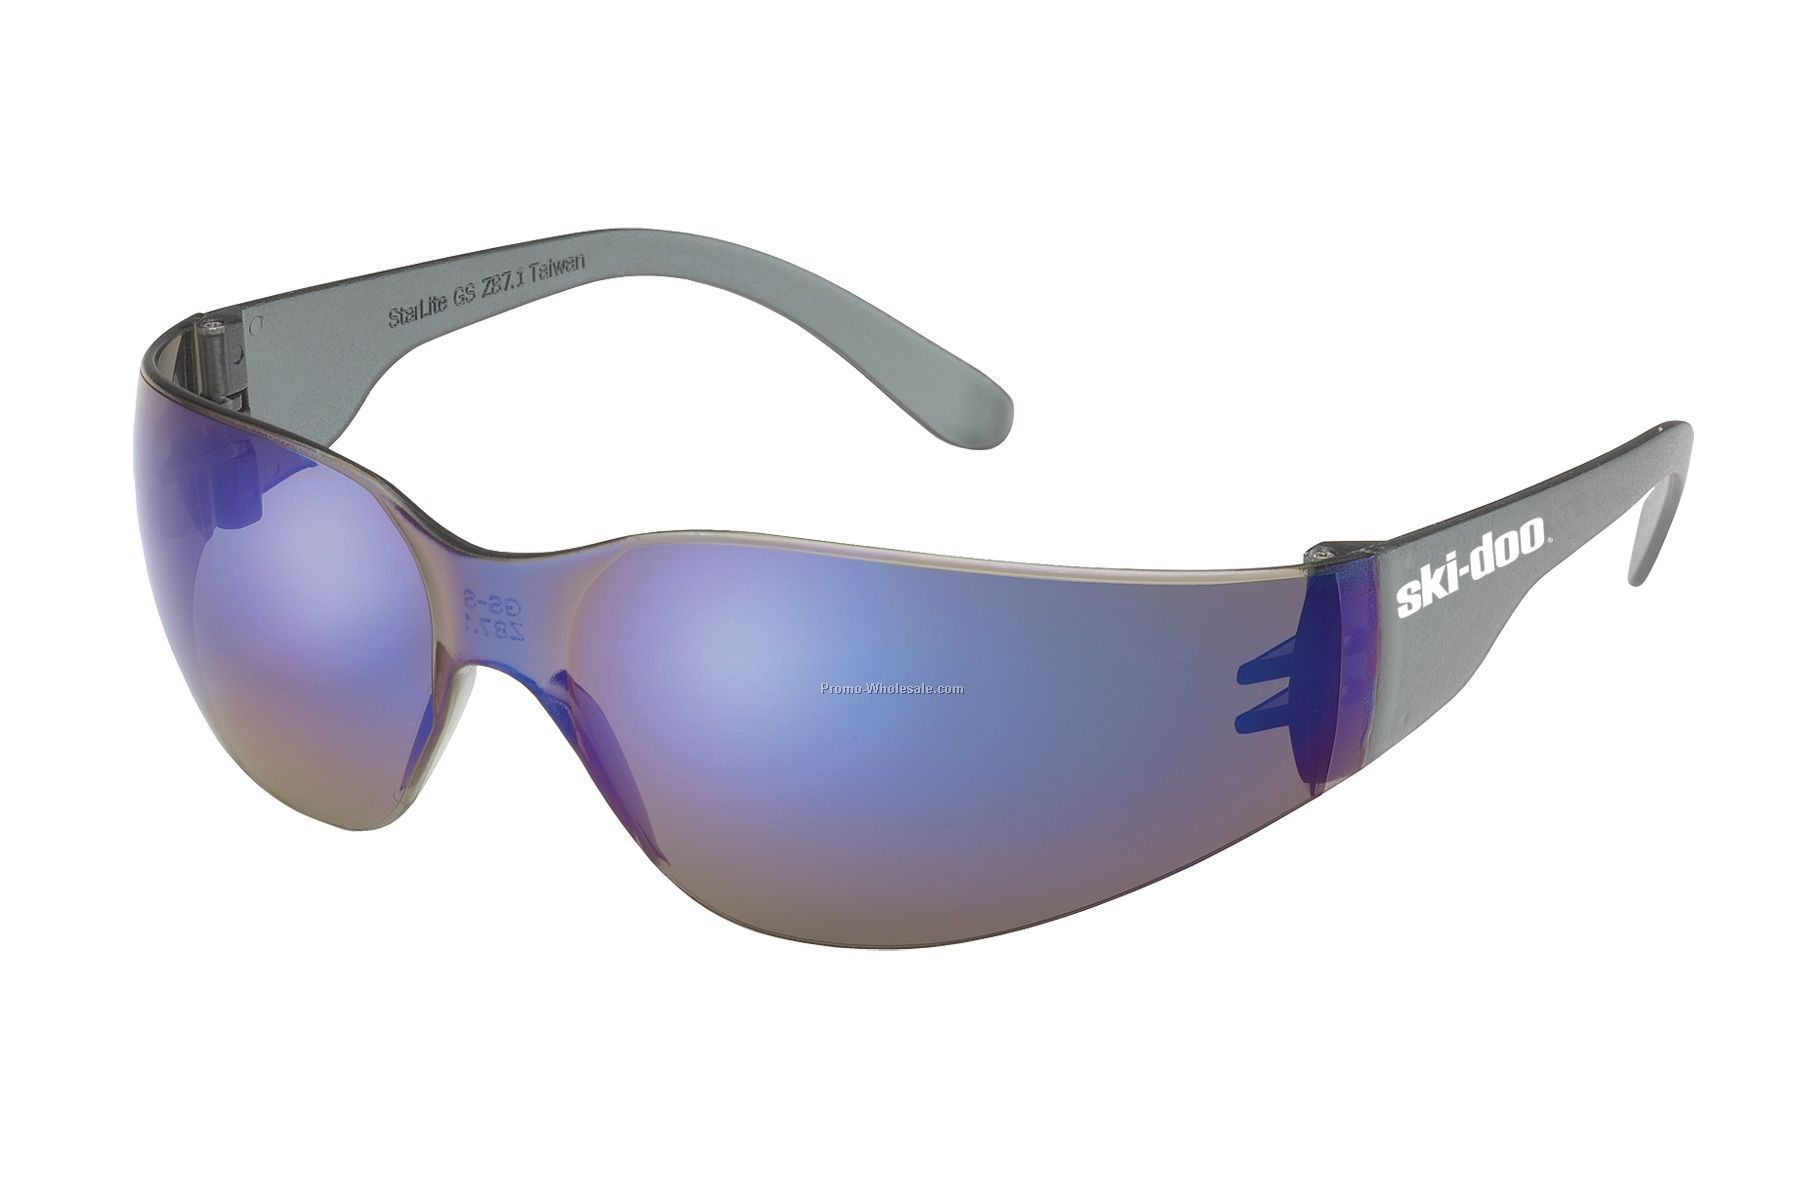 Blue Mirror Safety / Sunglasses